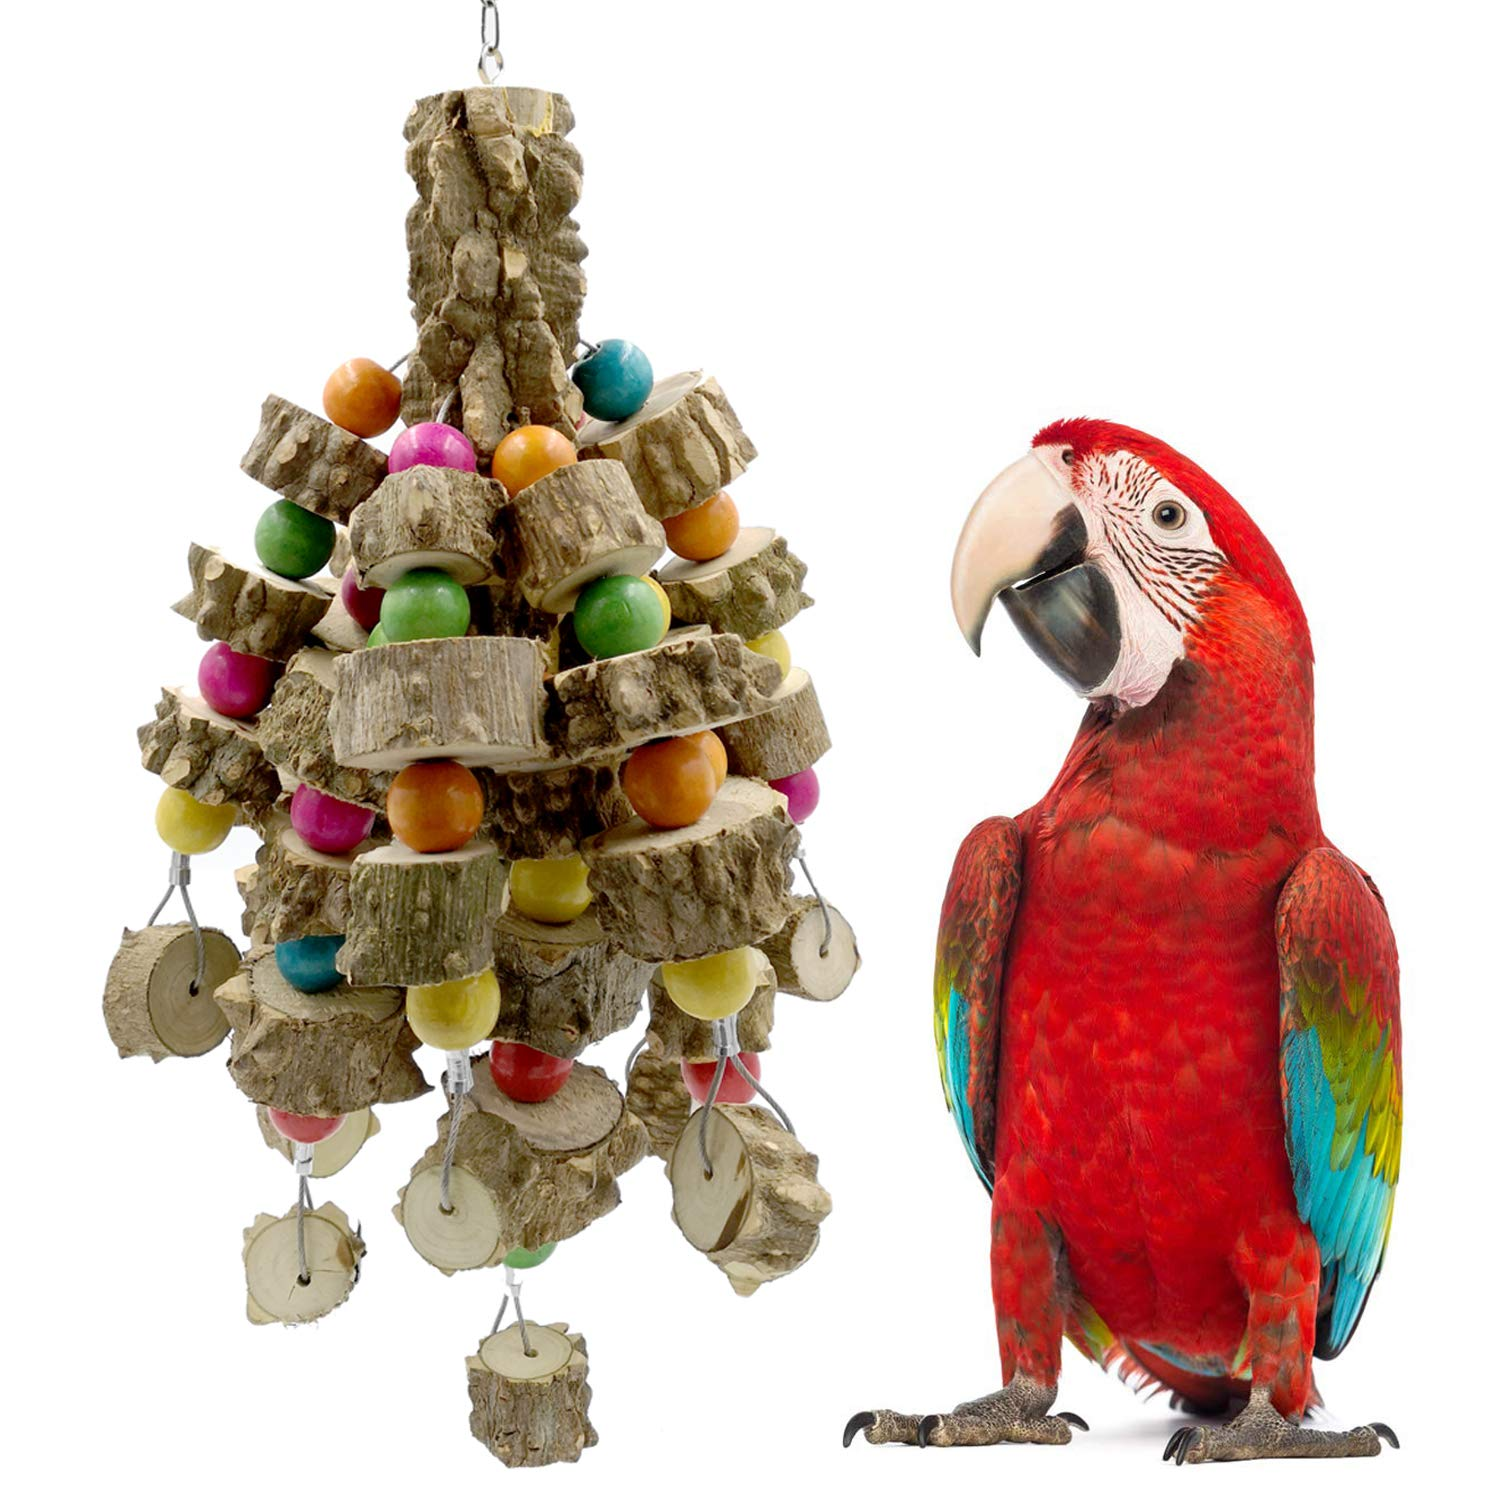 Onene Natural Wood Medium Parrot Toy, Bird Block Tearing Chewing Toy, Great for Small to Medium Parrots and Birds Like Budgies, Pacific, Lovebird, Parakeet, Cockatiel and Sun Conure by Onene